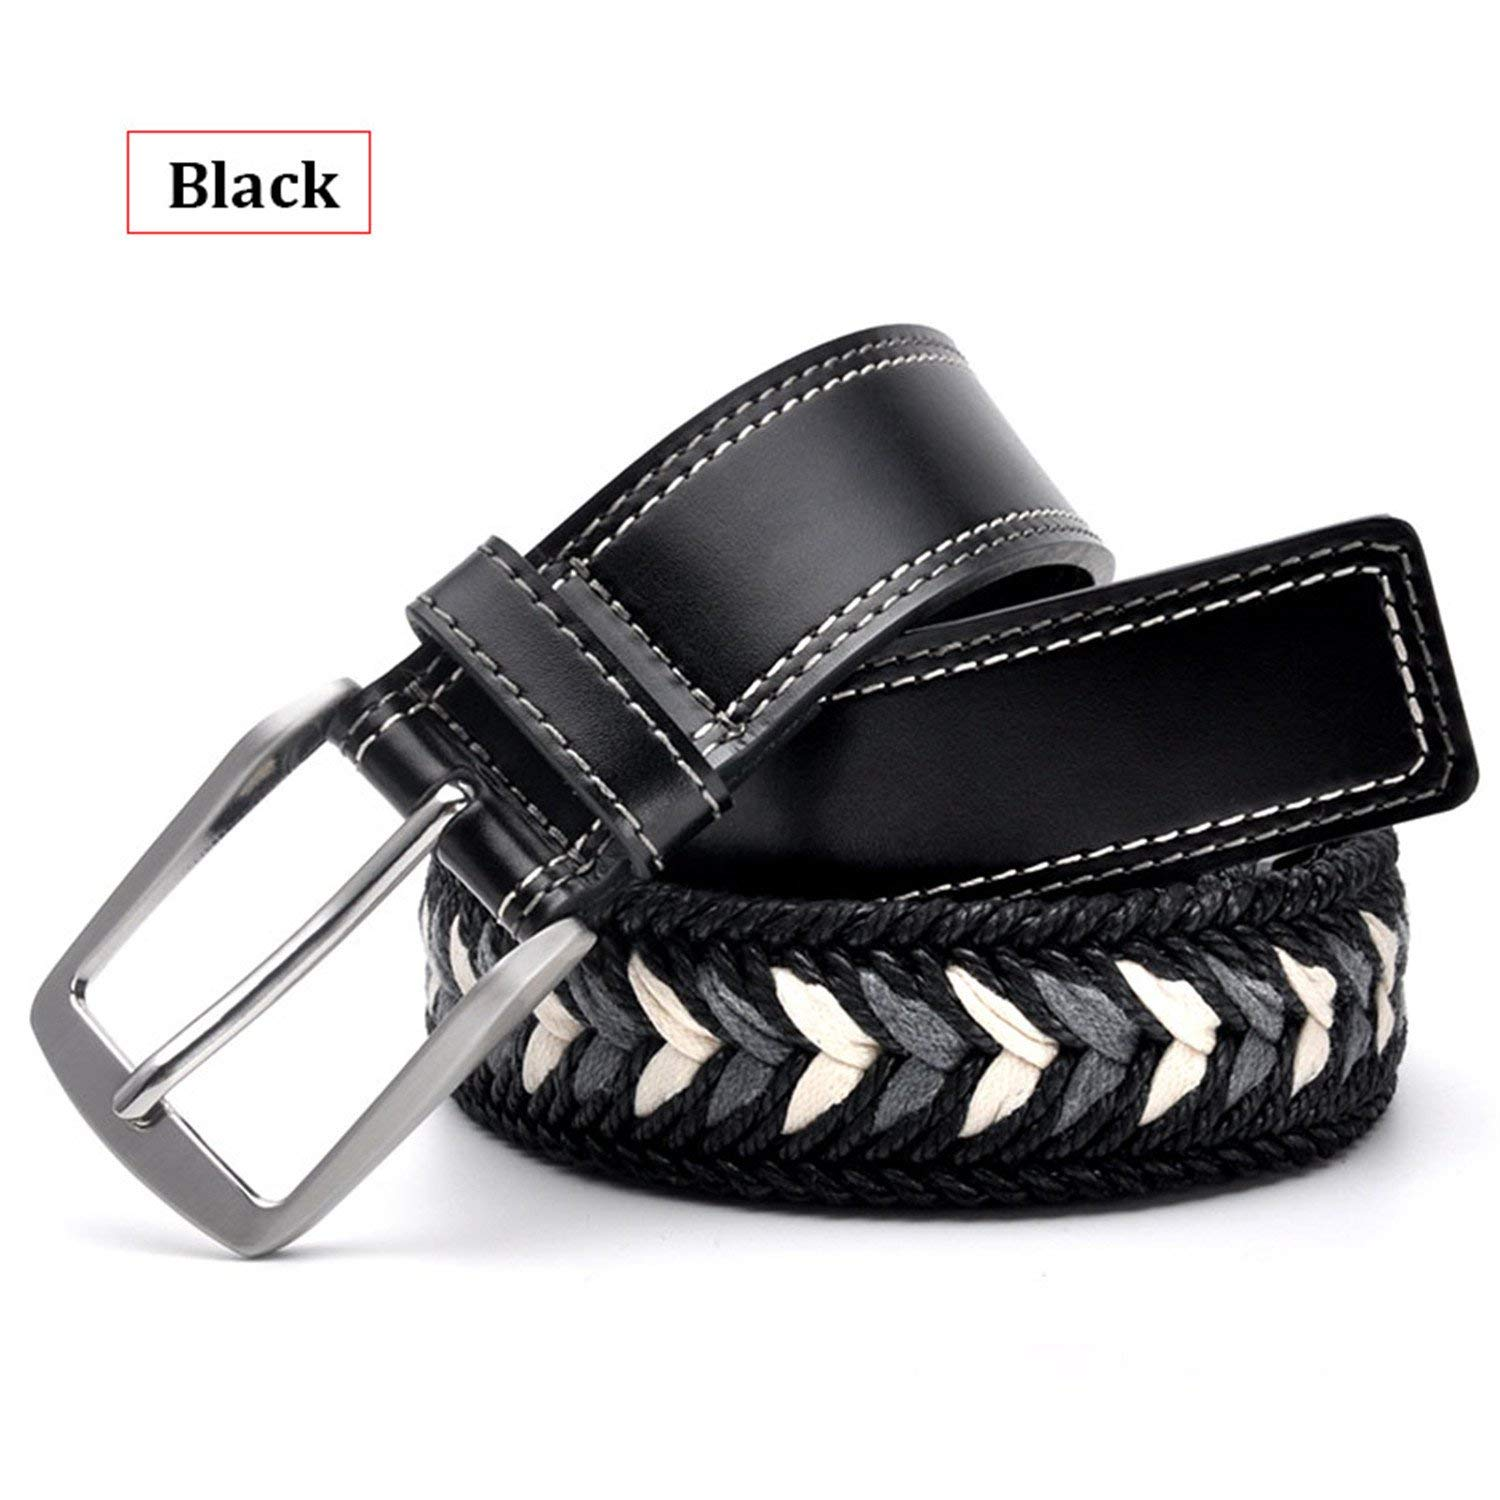 Thadensama Hot New Belt Women Fashion Mens Belts Braided Genuine Leather Straps Men Jeans Wide Girdle Male Casual Belt